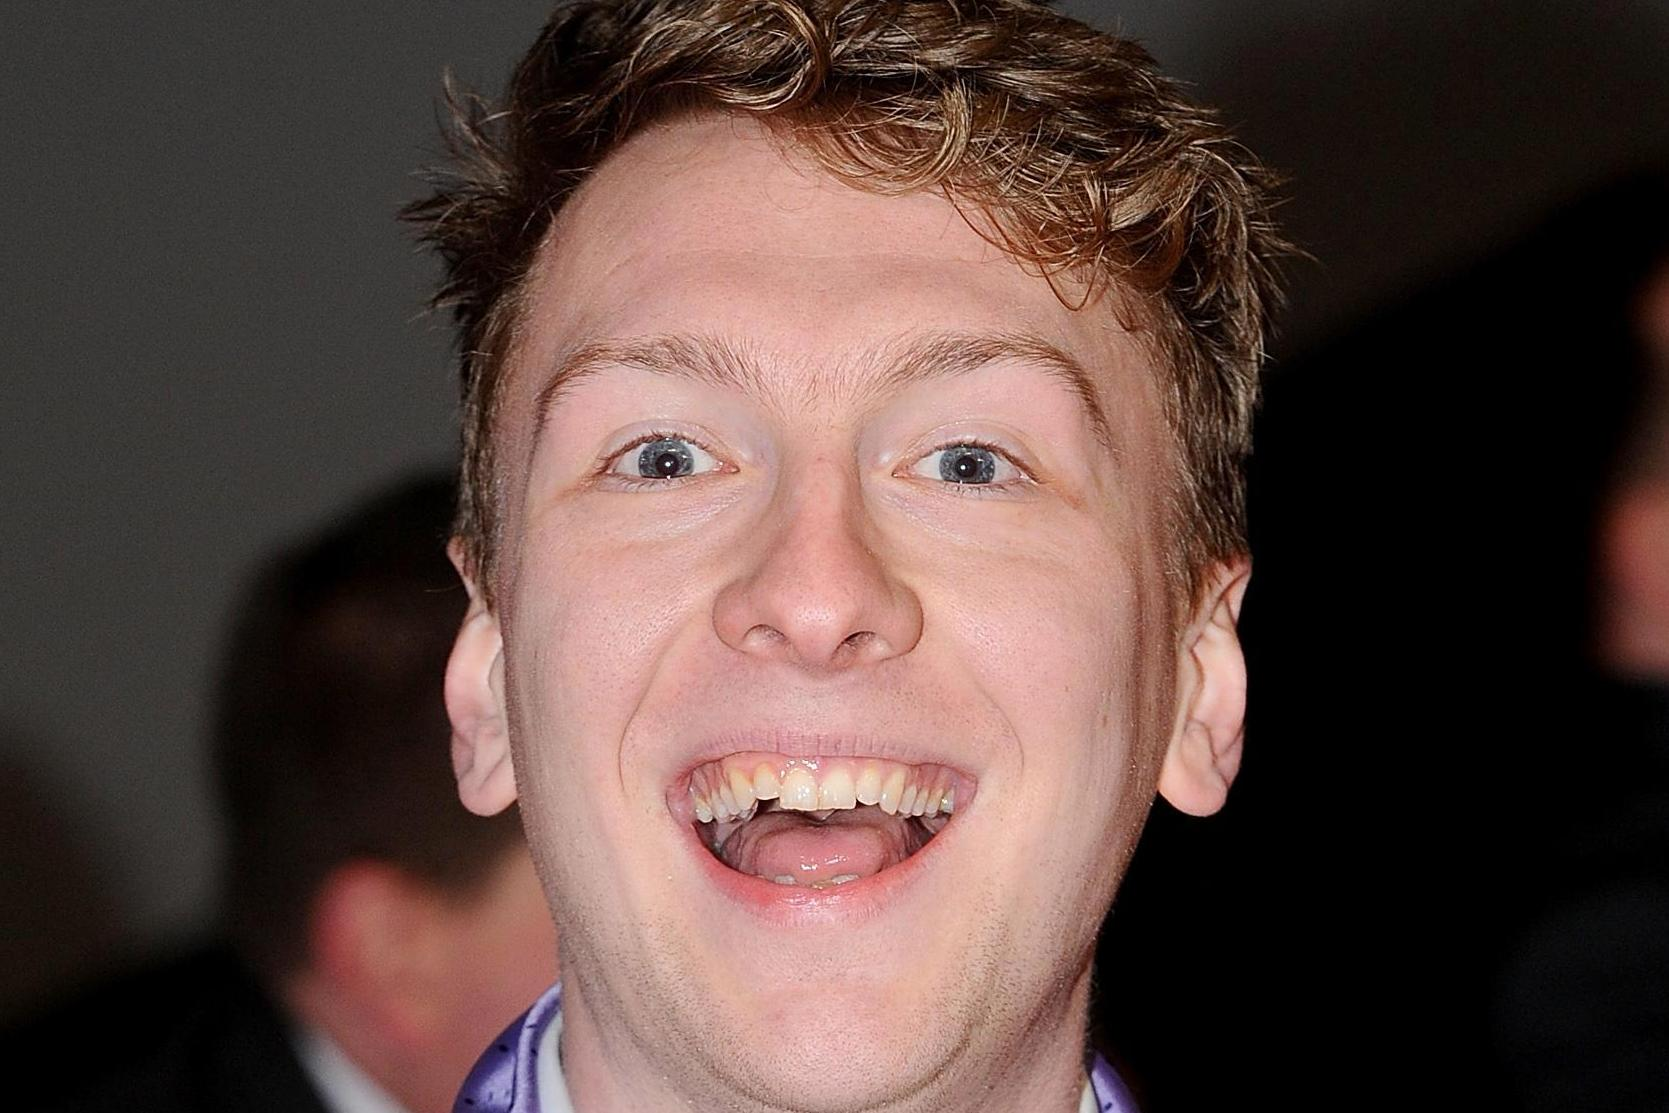 Who is Joe Lycett? Comedian and panel show regular and presenter of The Great British Sewing Bee